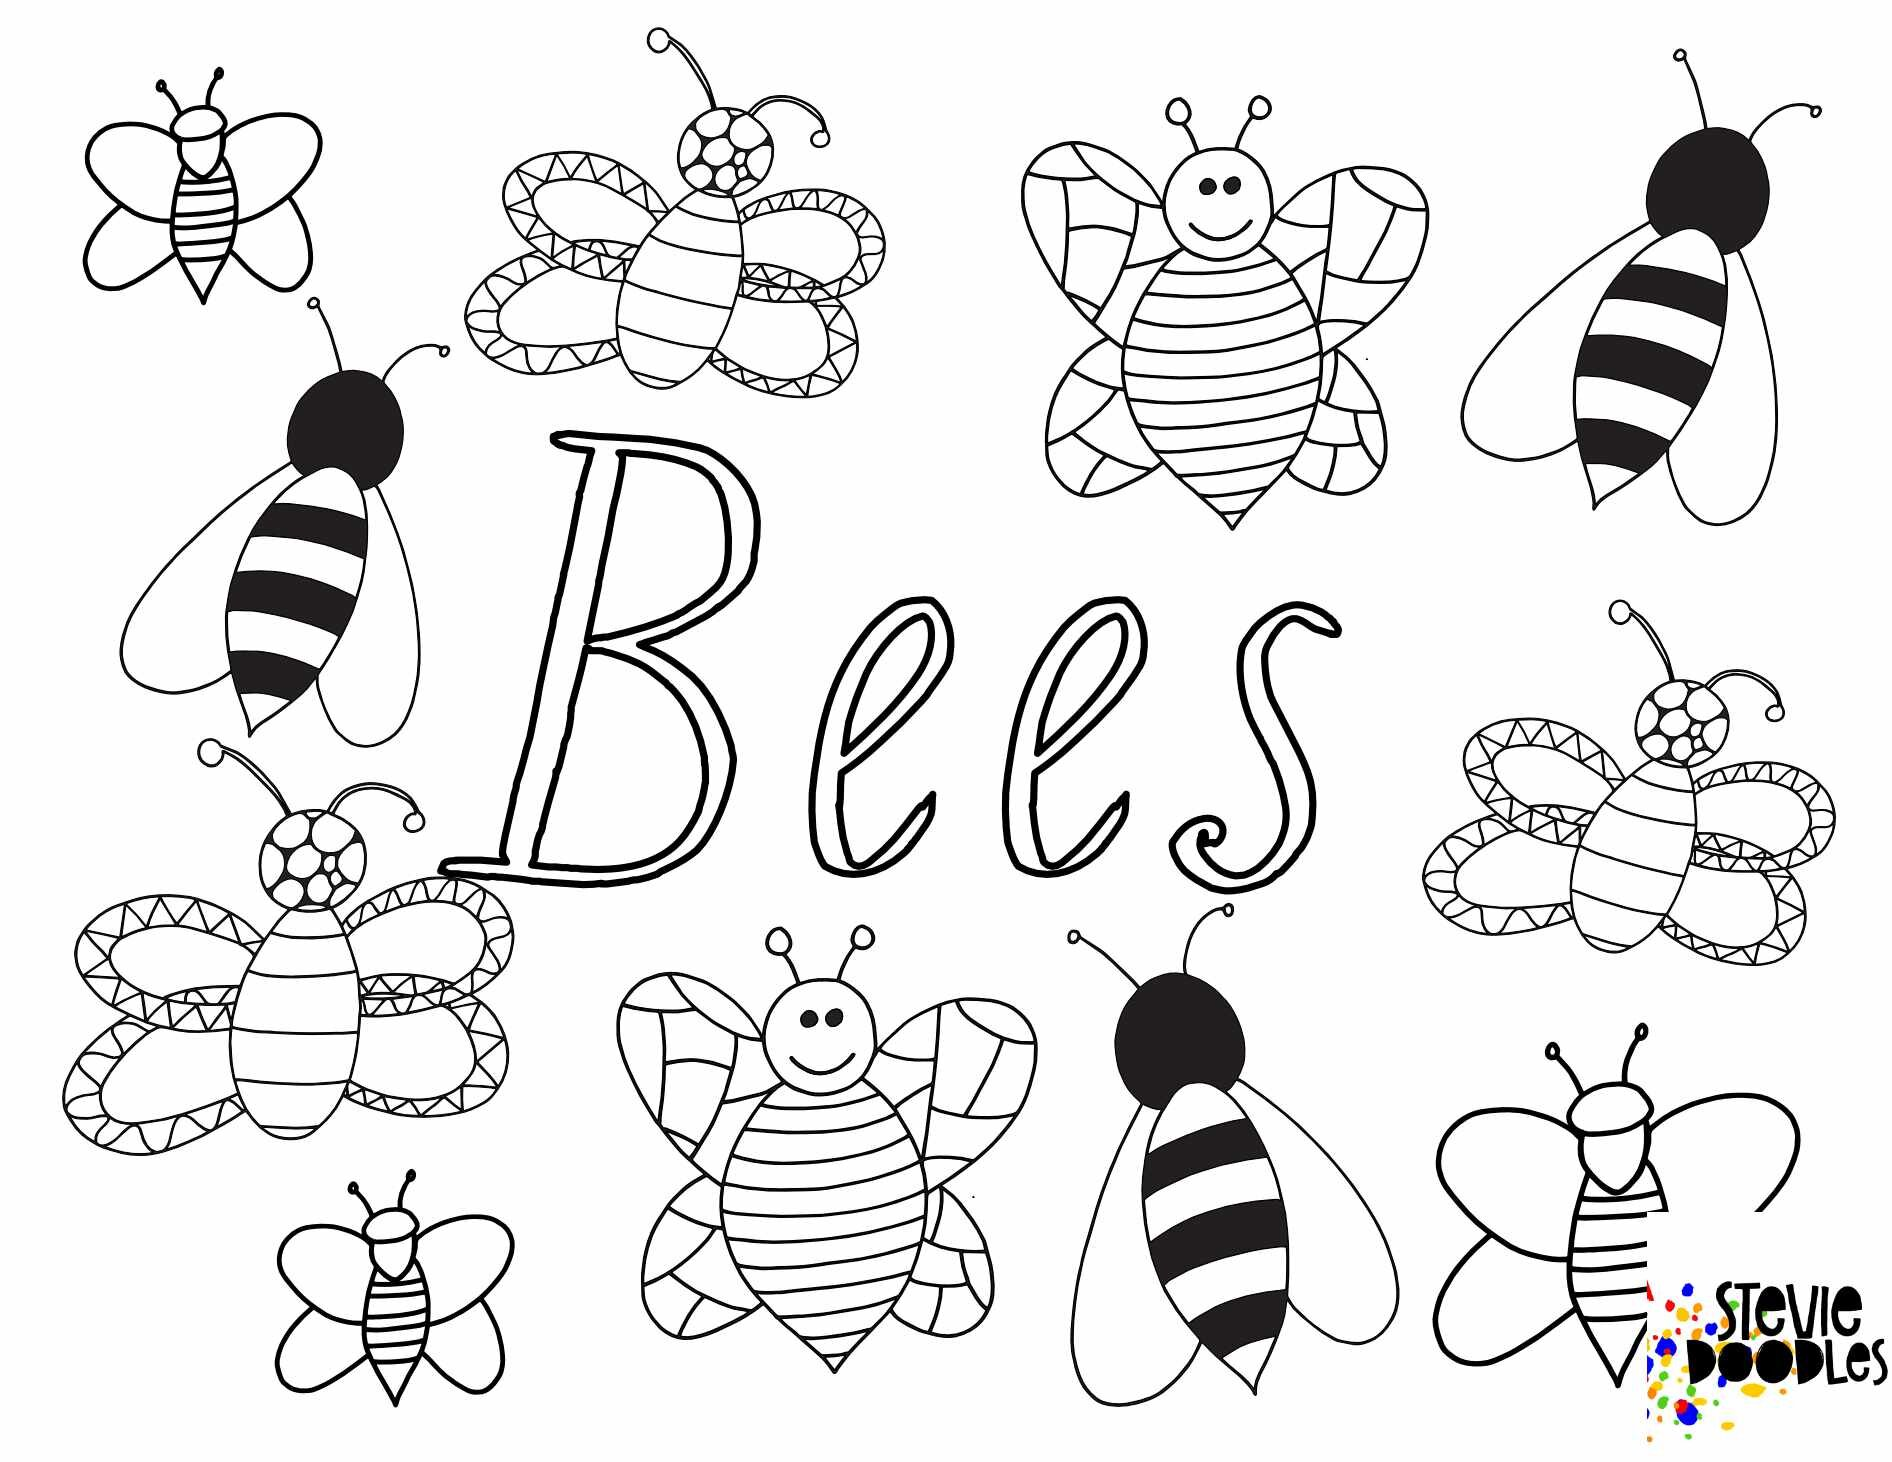 BEES! Free Printable Coloring Page — Stevie Doodles